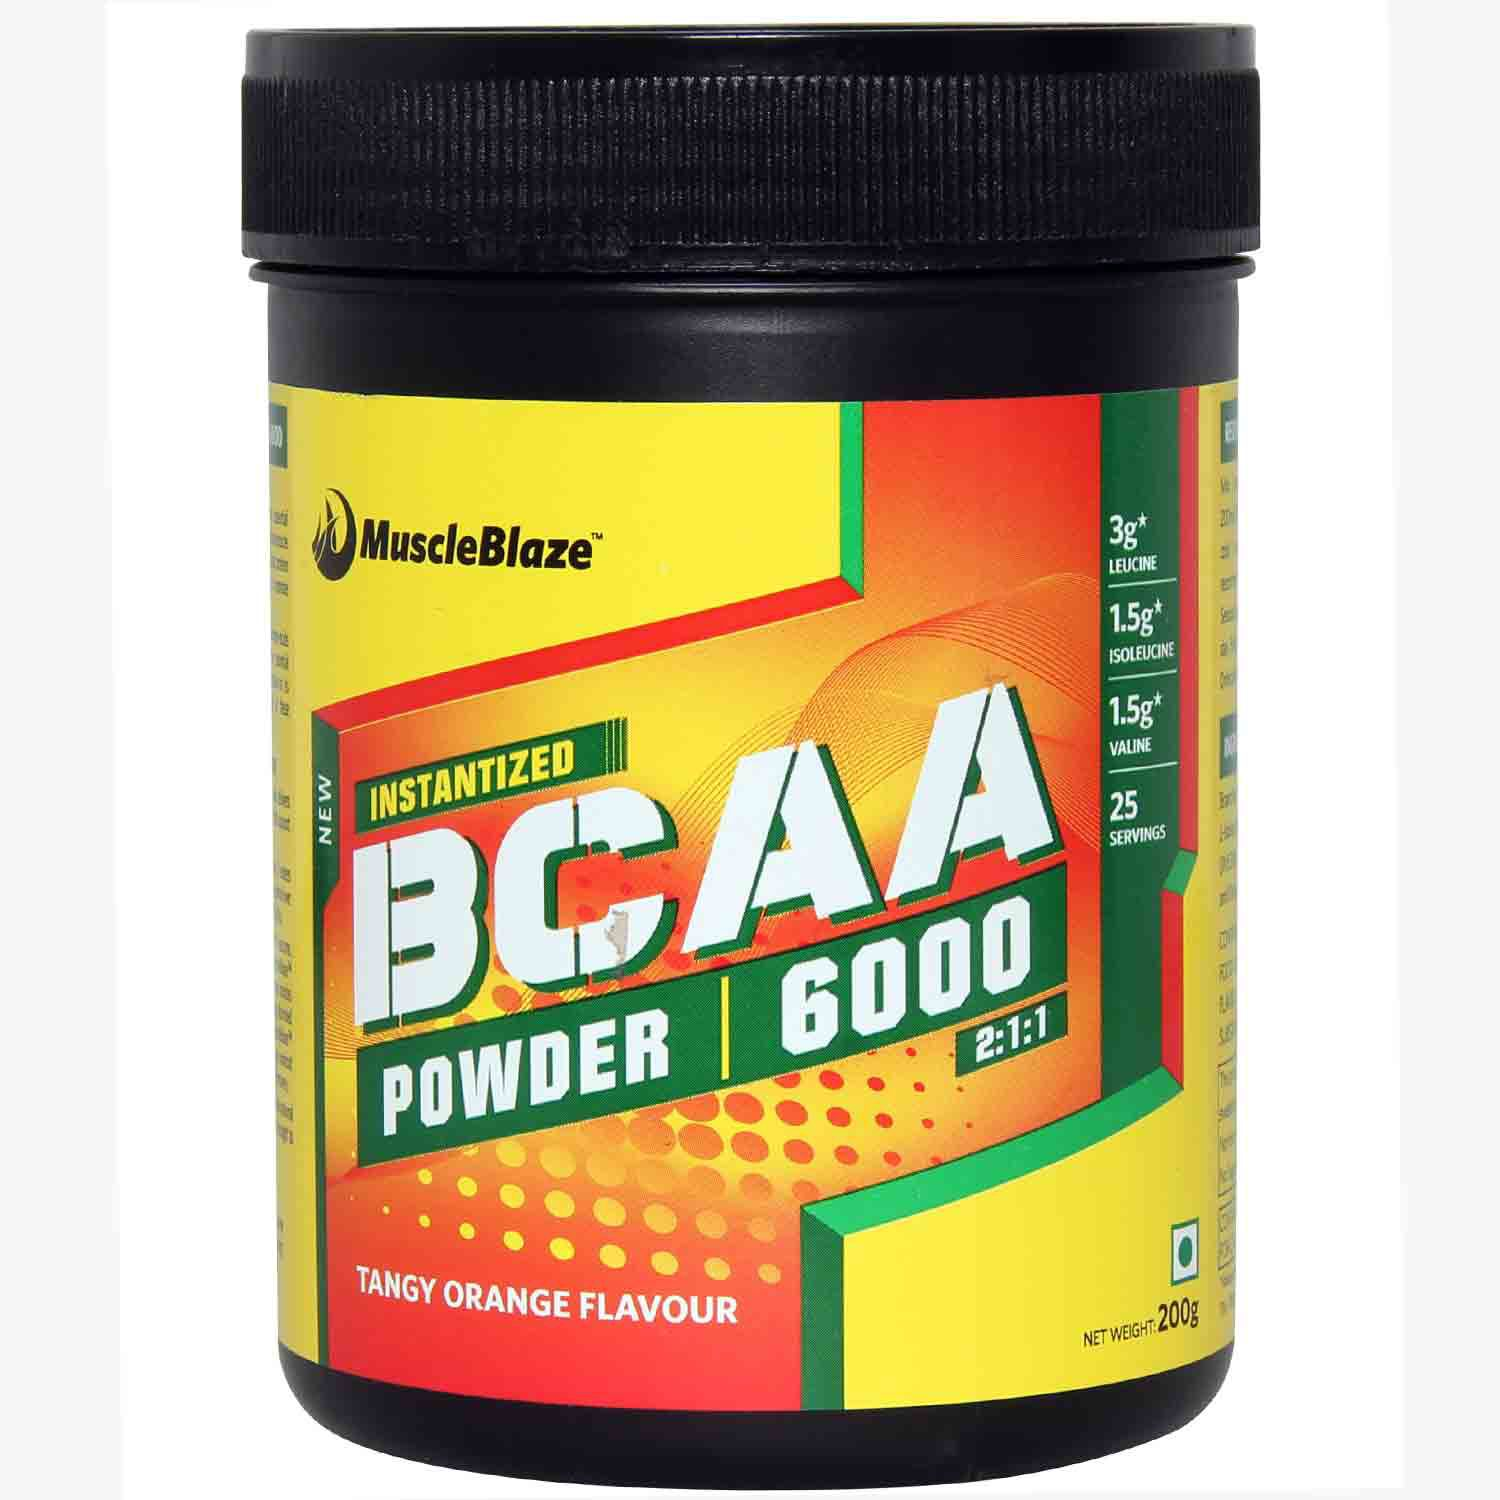 MuscleBlaze BCAA 6000 amino acid powder 0 44 lb 200g